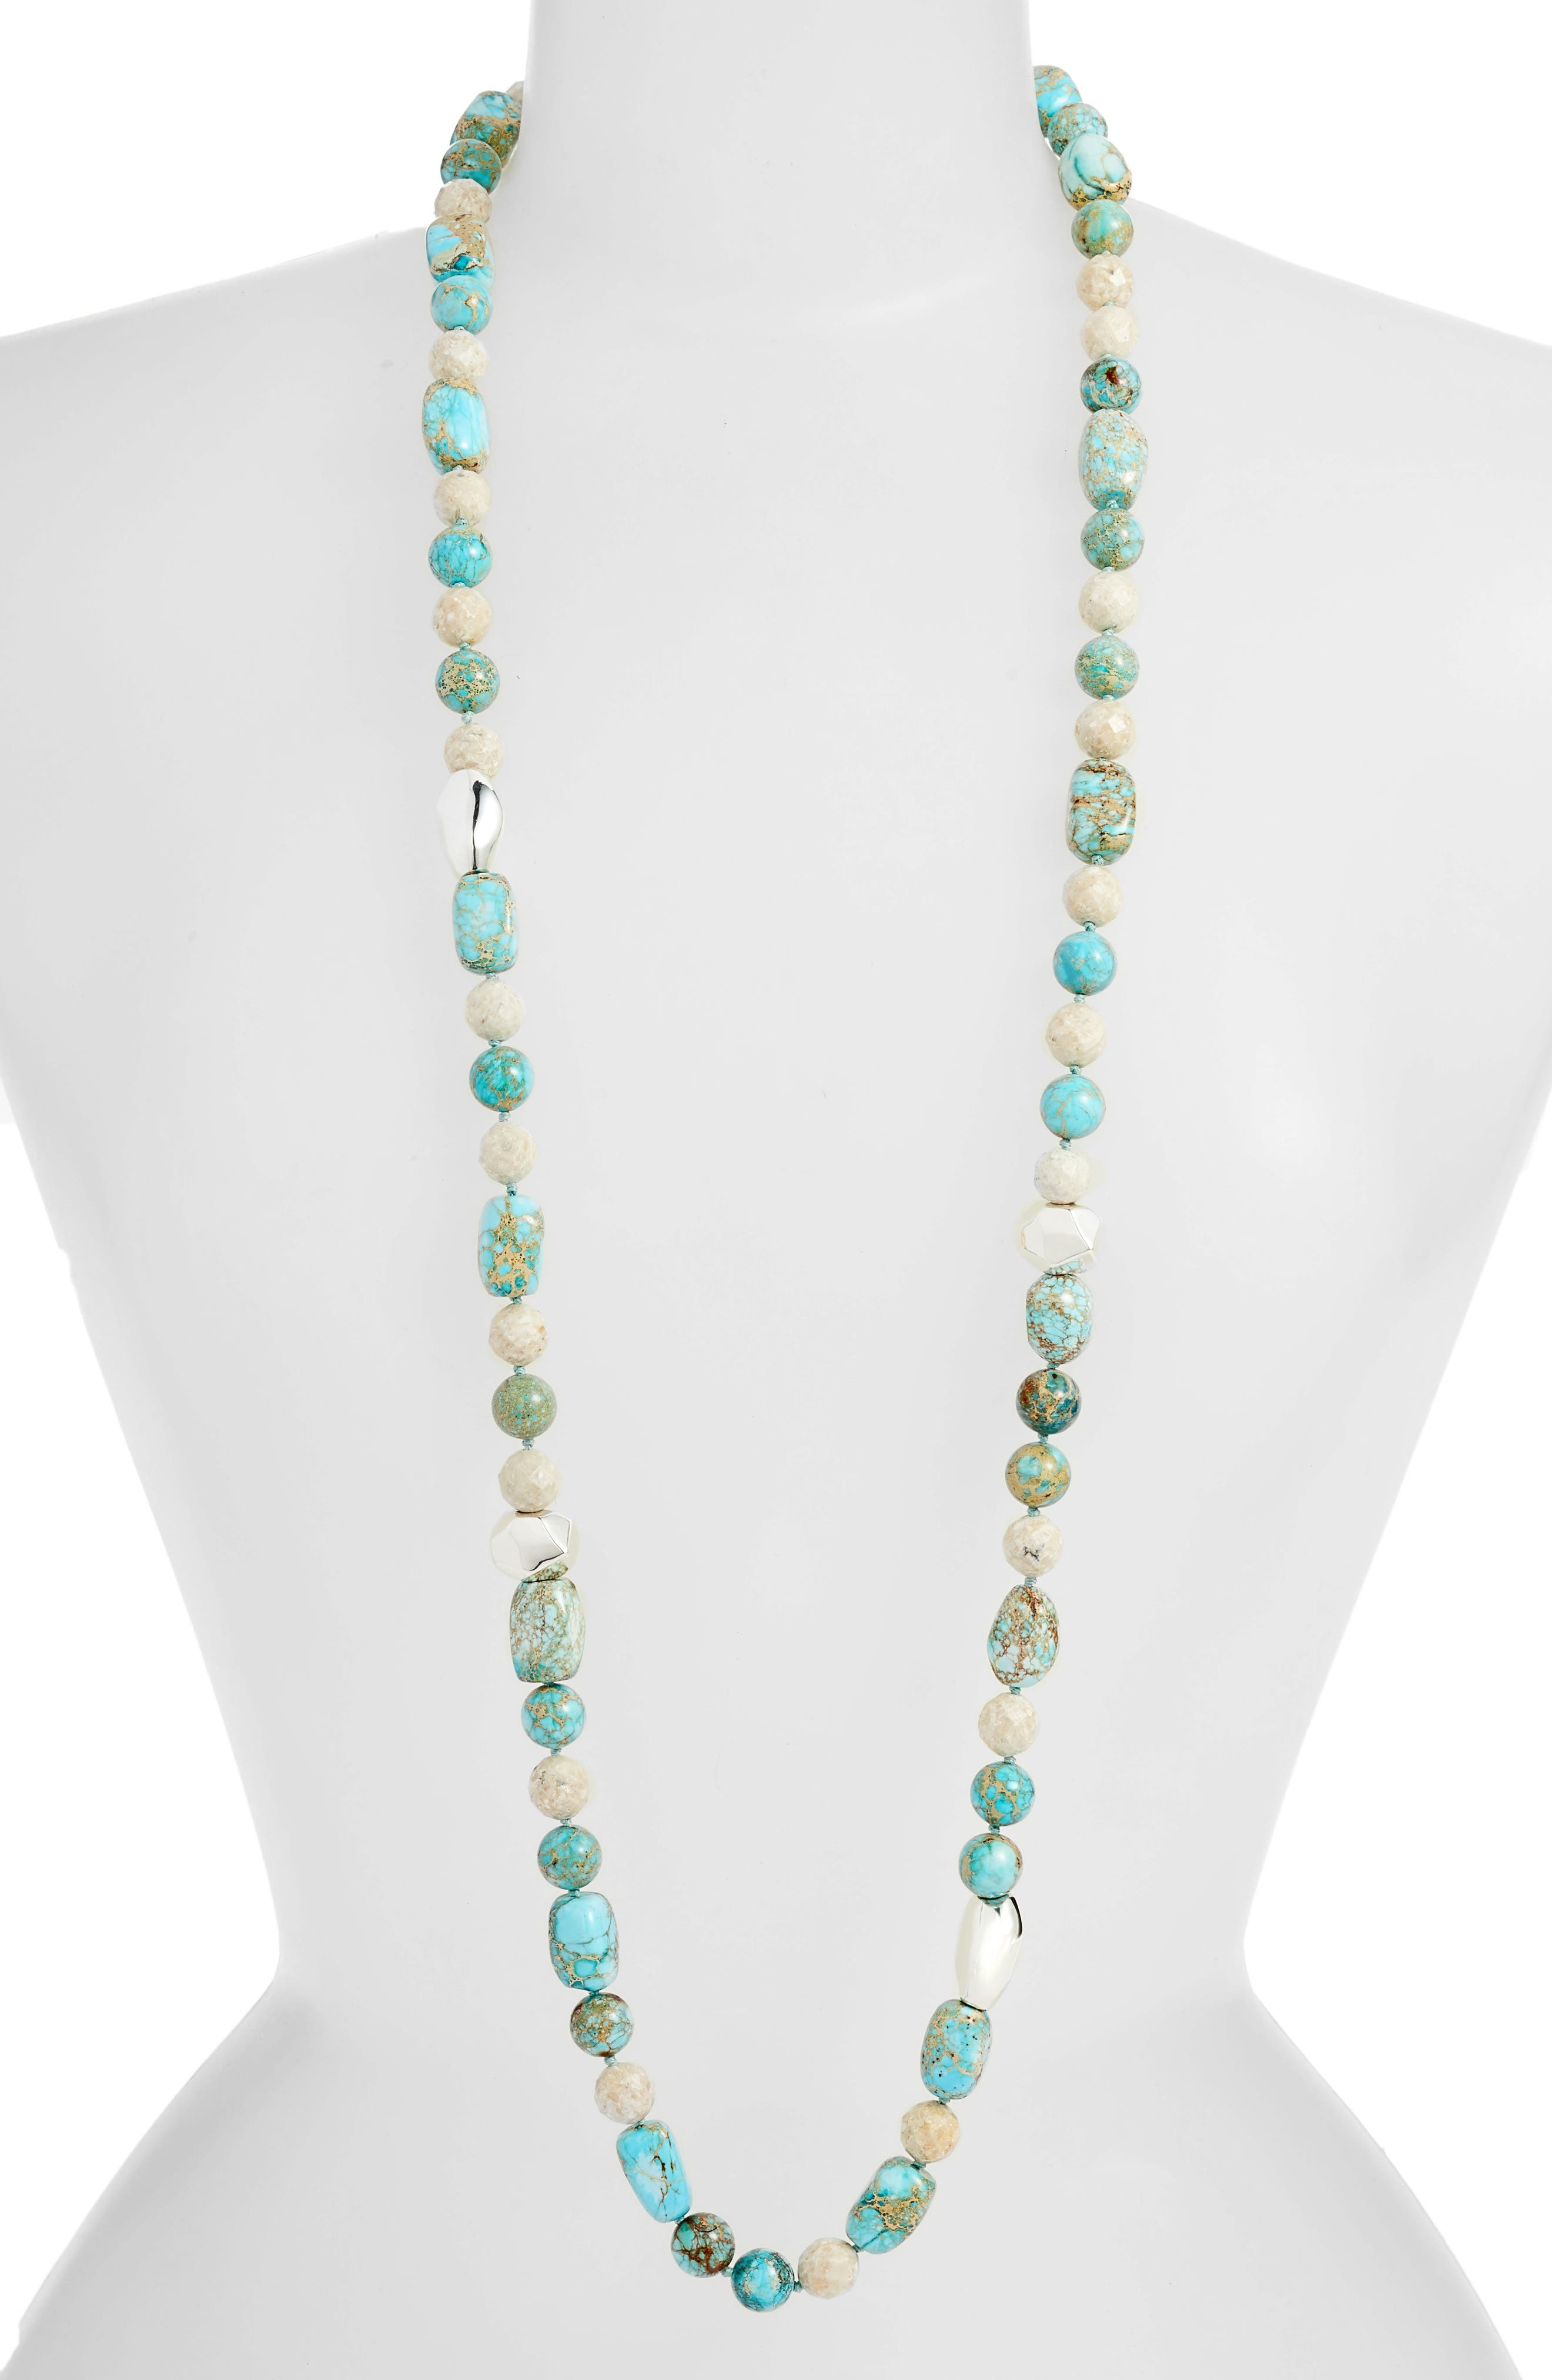 Silver Accent Jasper Beaded Necklace,                         Main,                         color, BLUE/ BEIGE/ SILVER